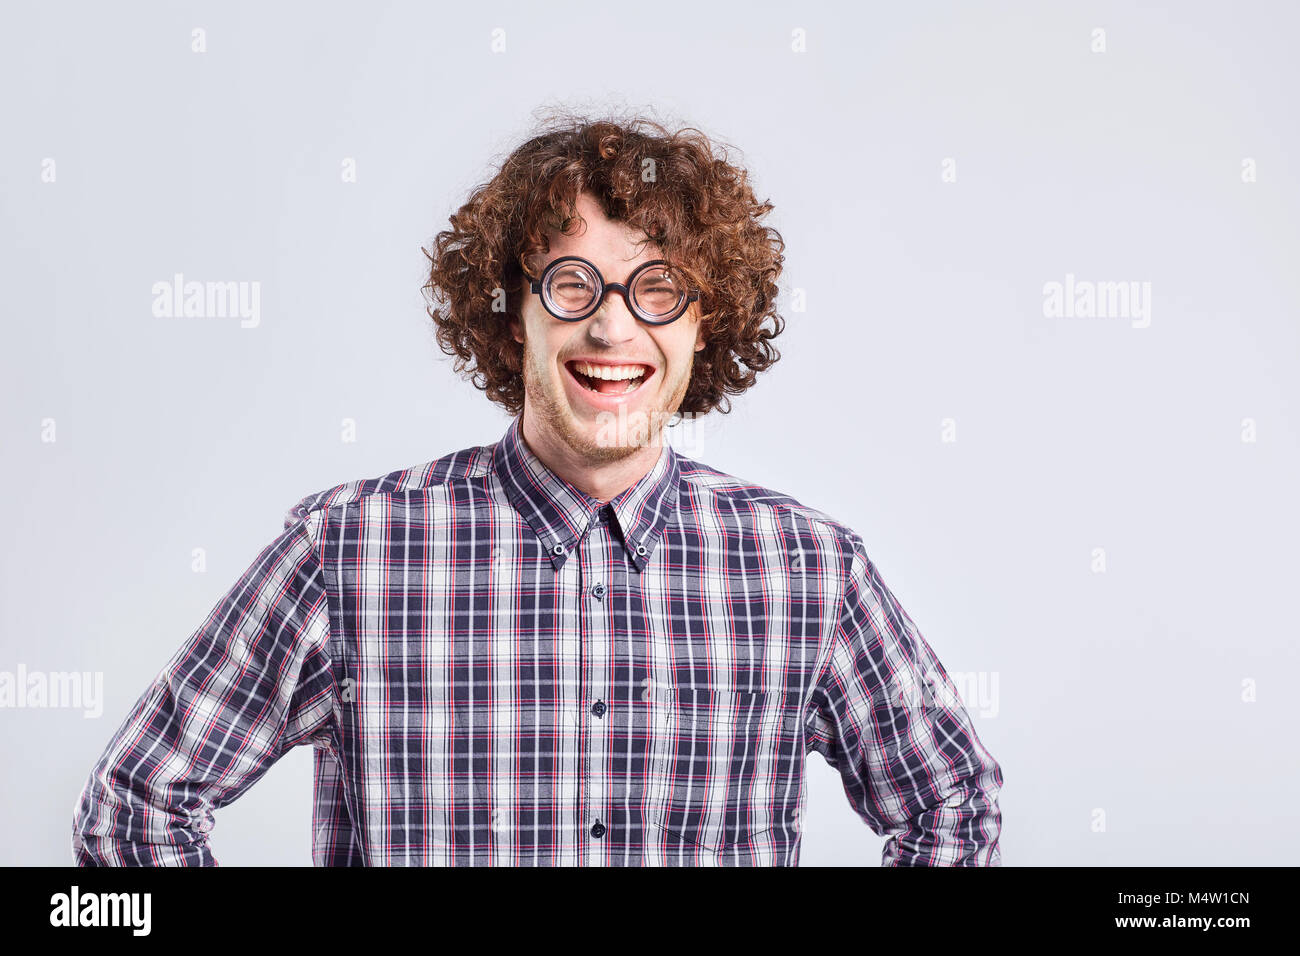 Curly nerd man in glasses with a stupid kind of funny emotion. - Stock Image